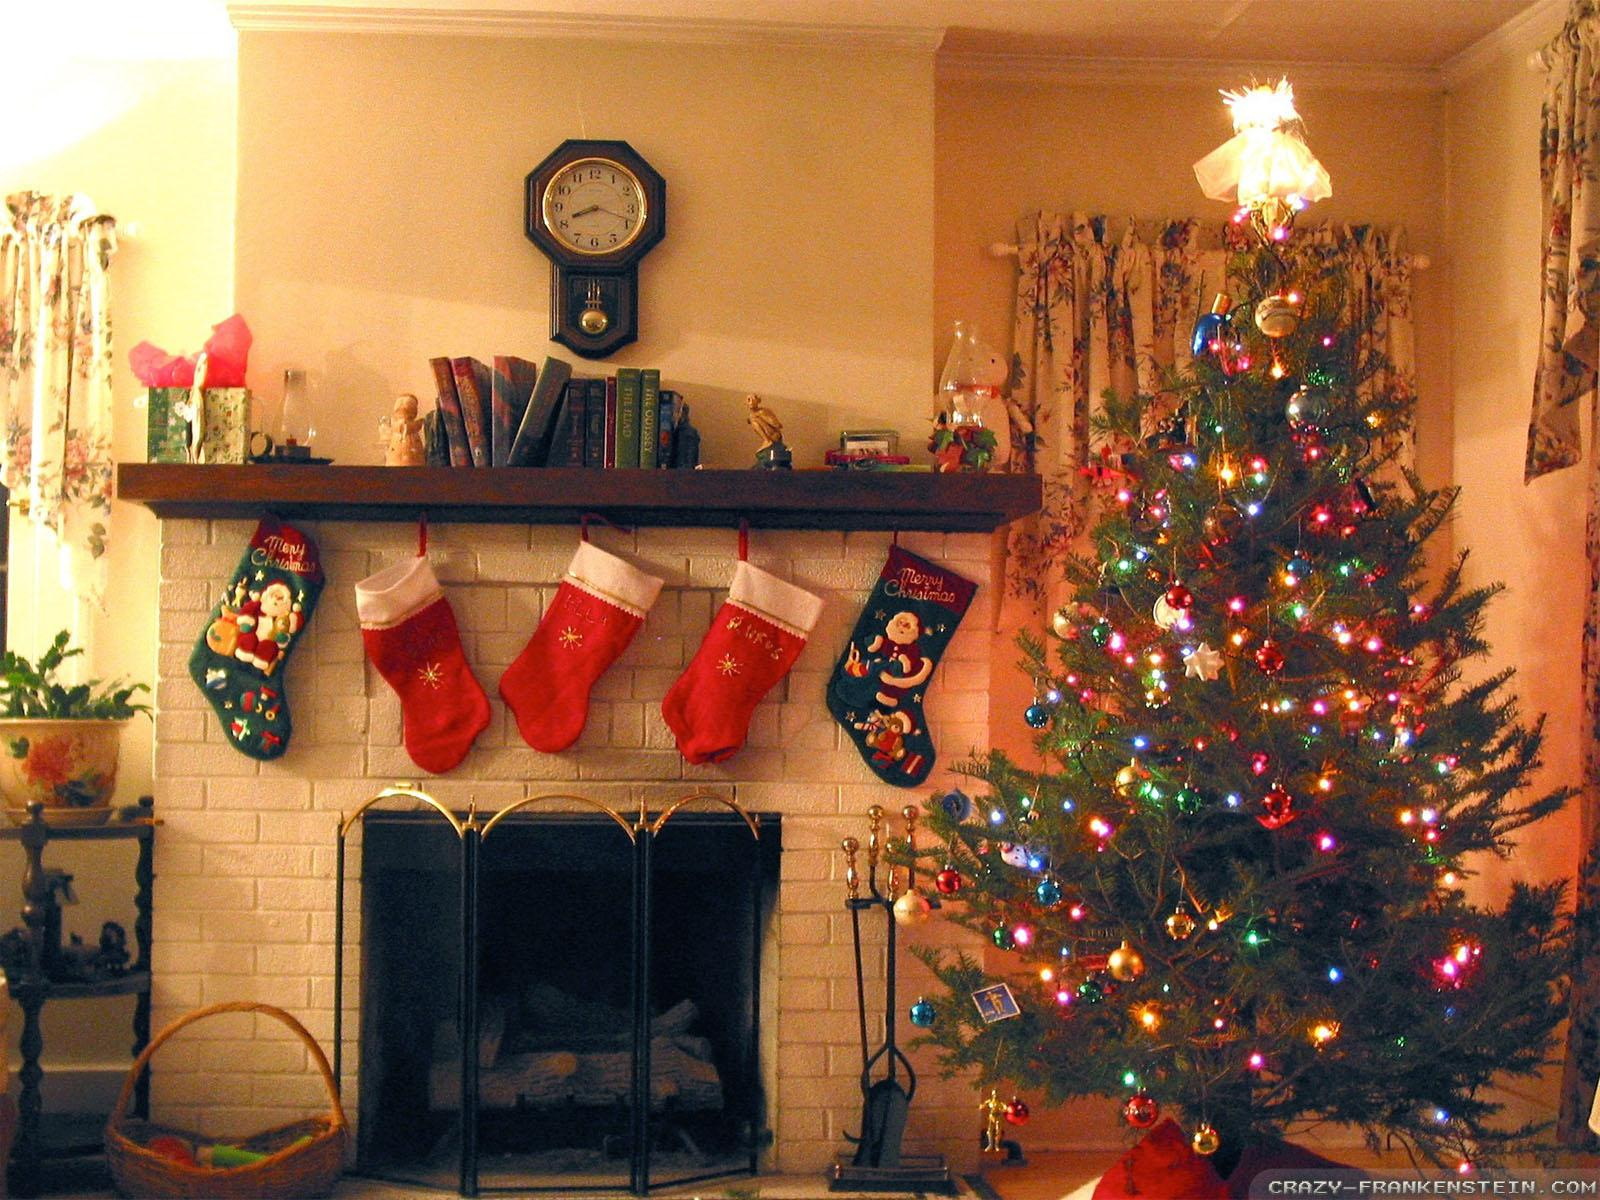 When is Christmas Day in New Zealand in 2014? - When is the holiday